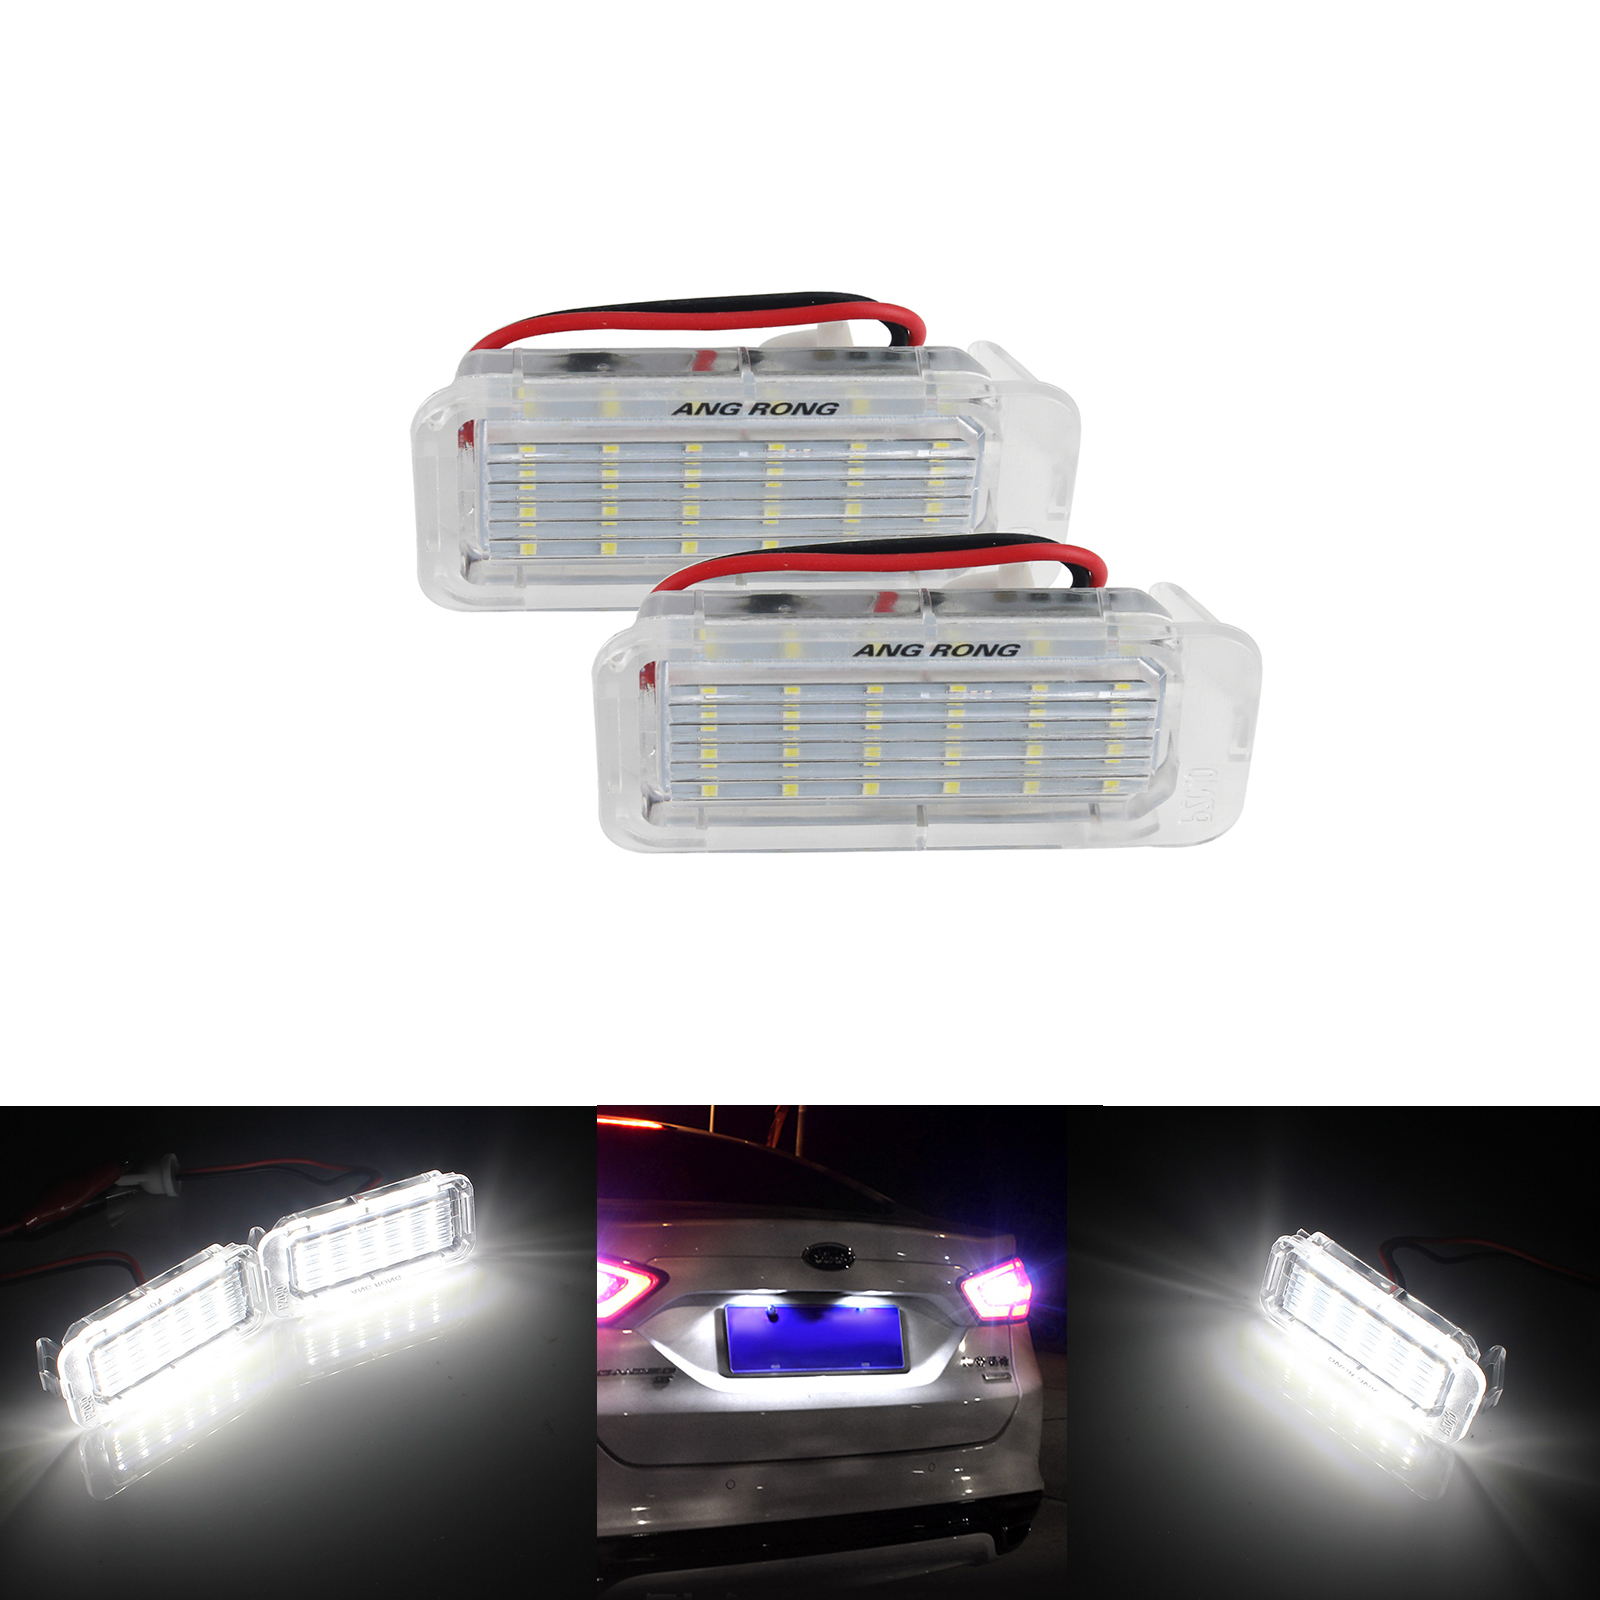 2 Licence Number Plate Light For Ford Fiesta Focus C-Max Kuga Mondeo Galaxy MK4